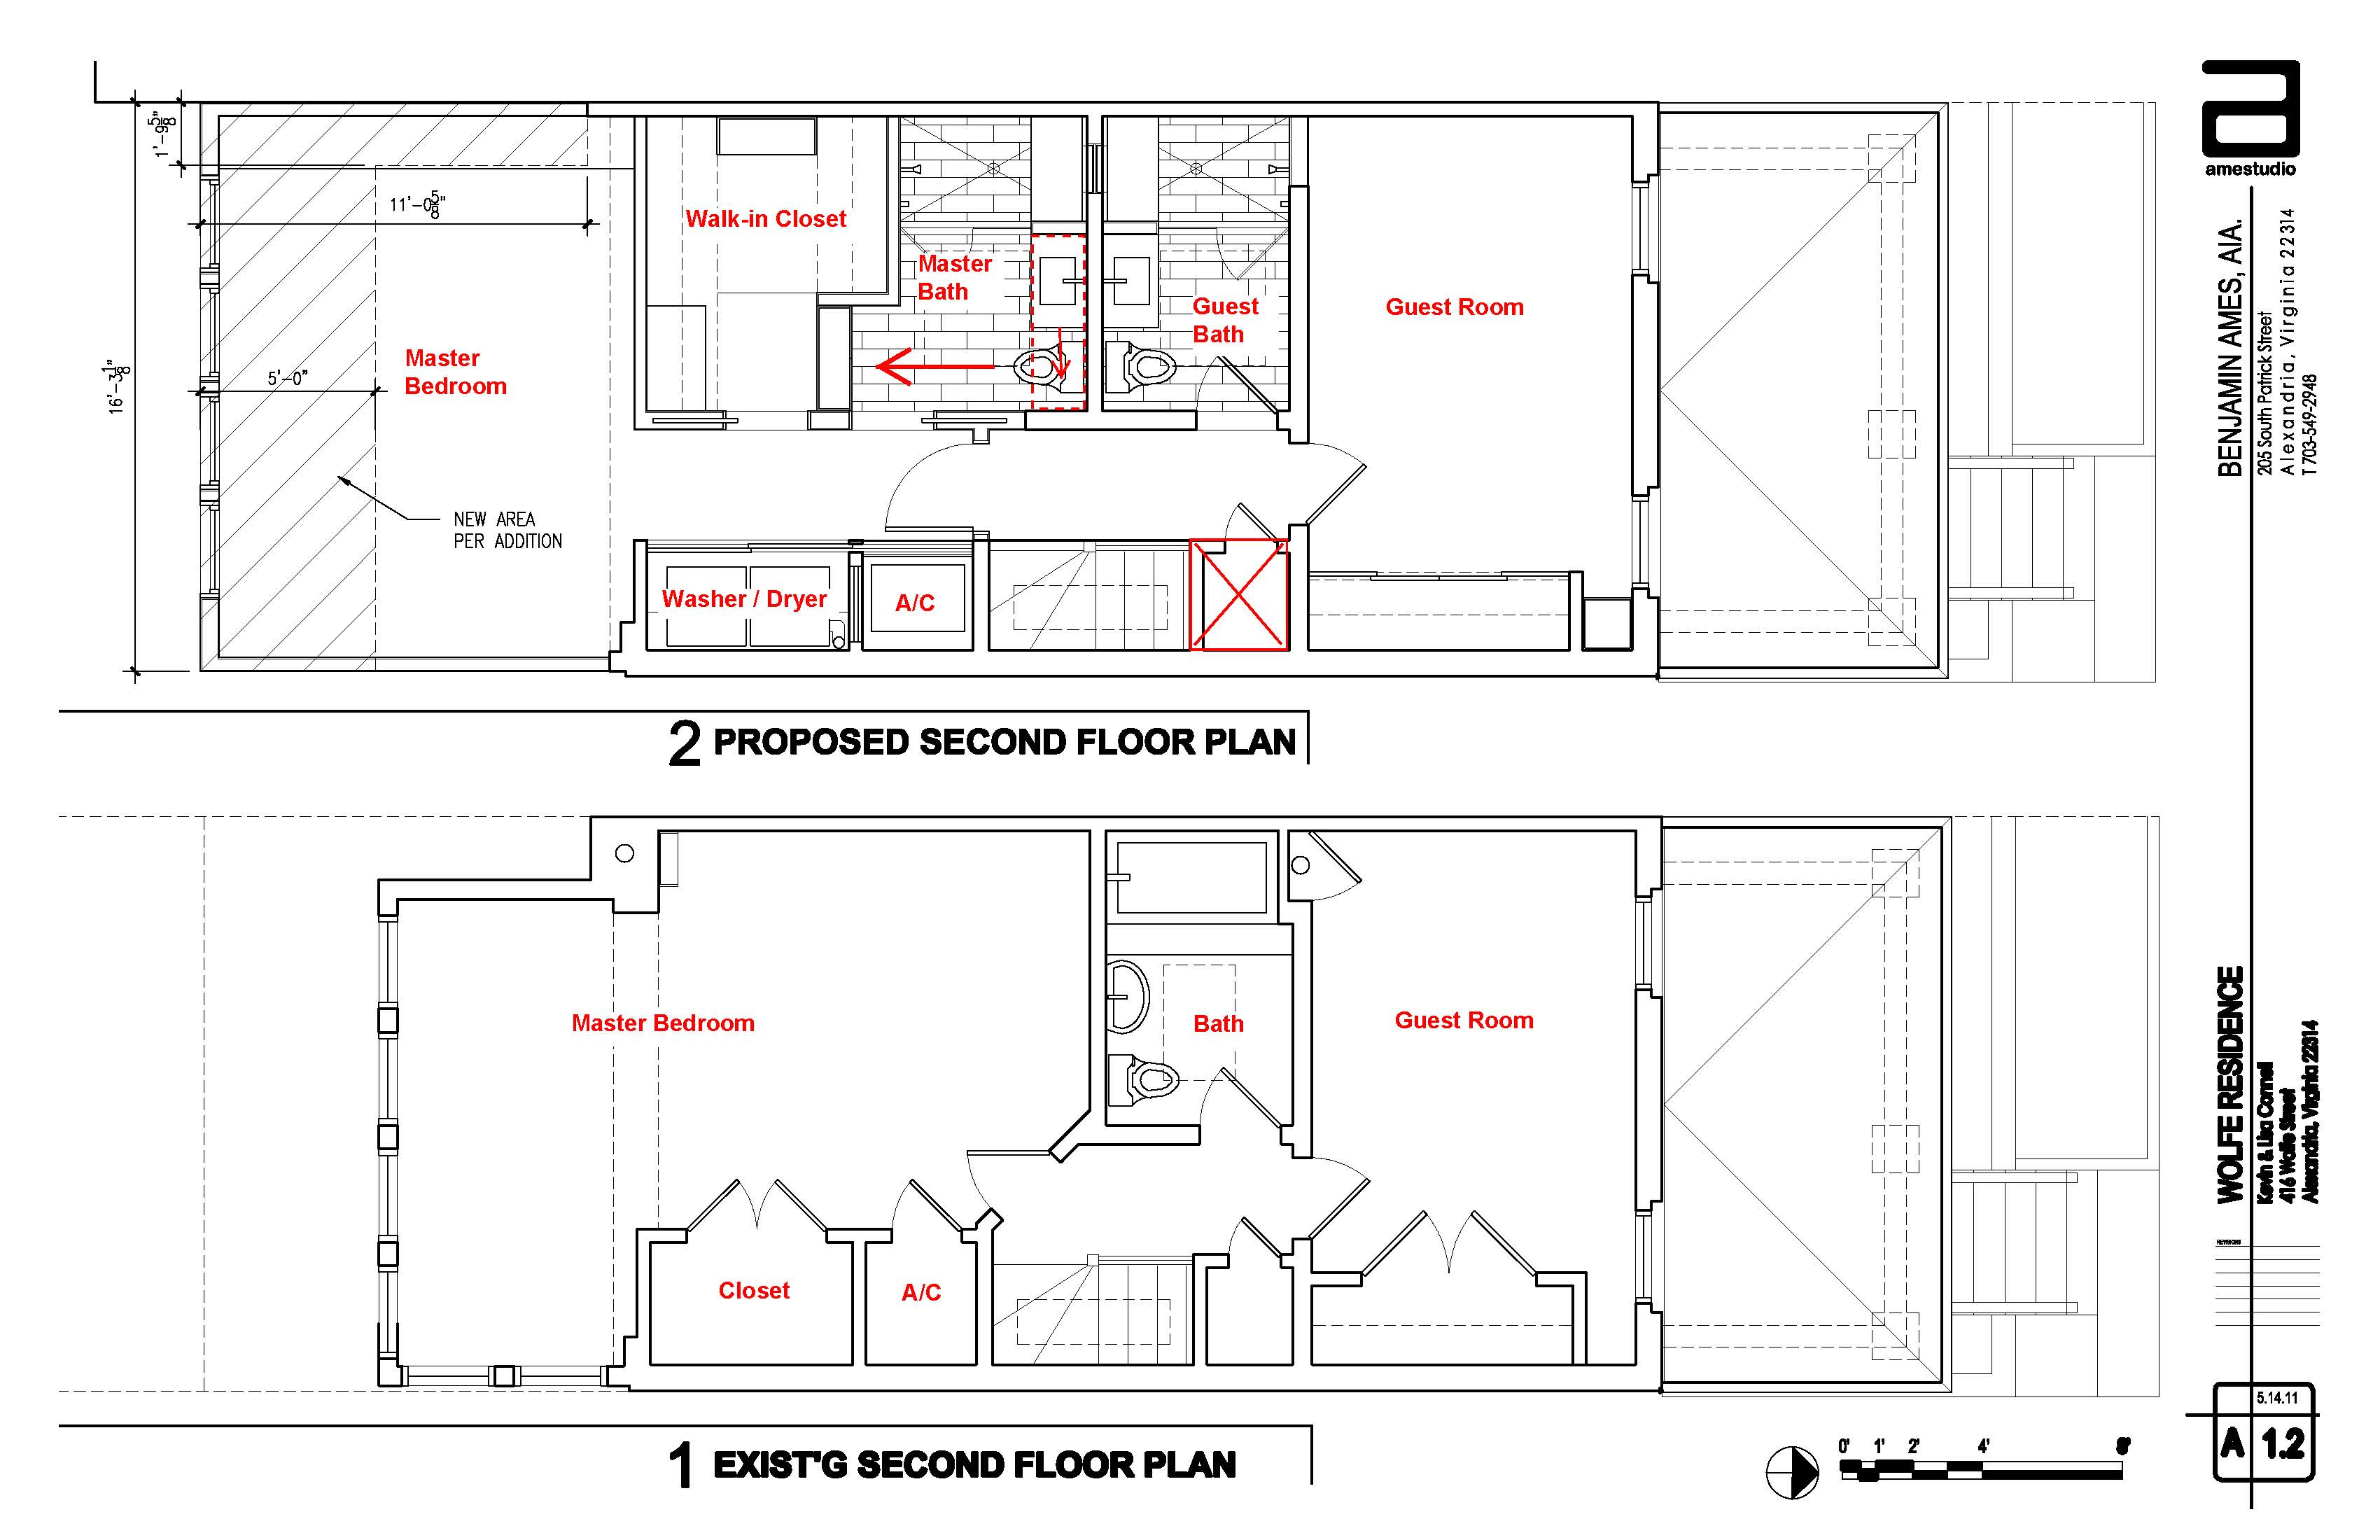 Small bathroom layout besides displayimage further the second floor